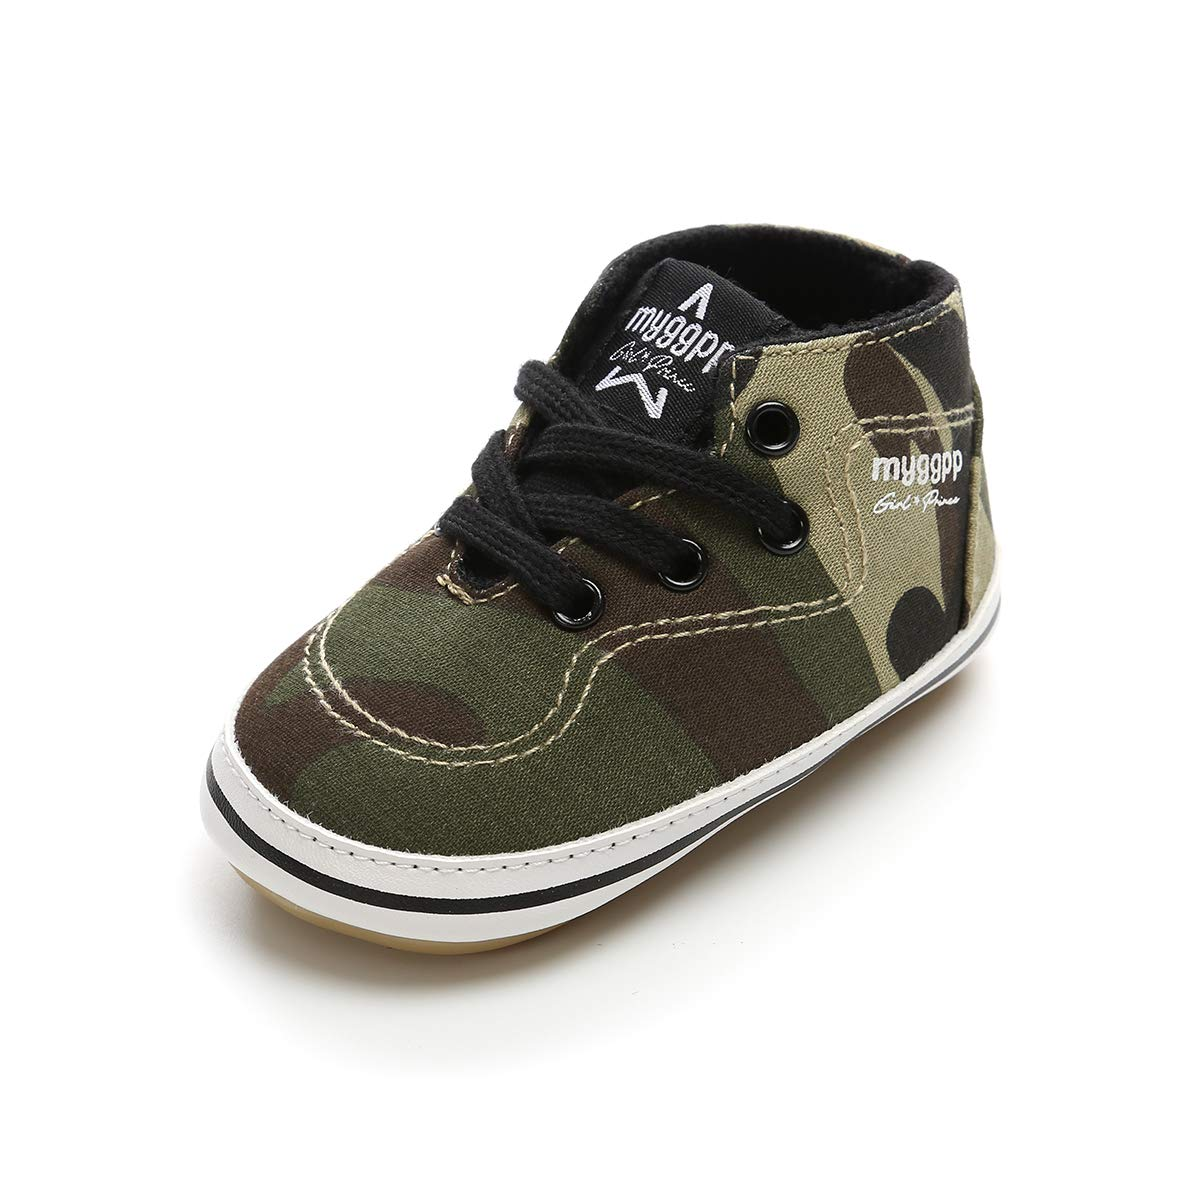 Tutoo Toddler Baby Boys Girls Shoes Infnat Summer Fashion Sneakers Prewalker First Walkers Rubber Sole (4.33 Inches(3-6 Months), D-Camo Green)